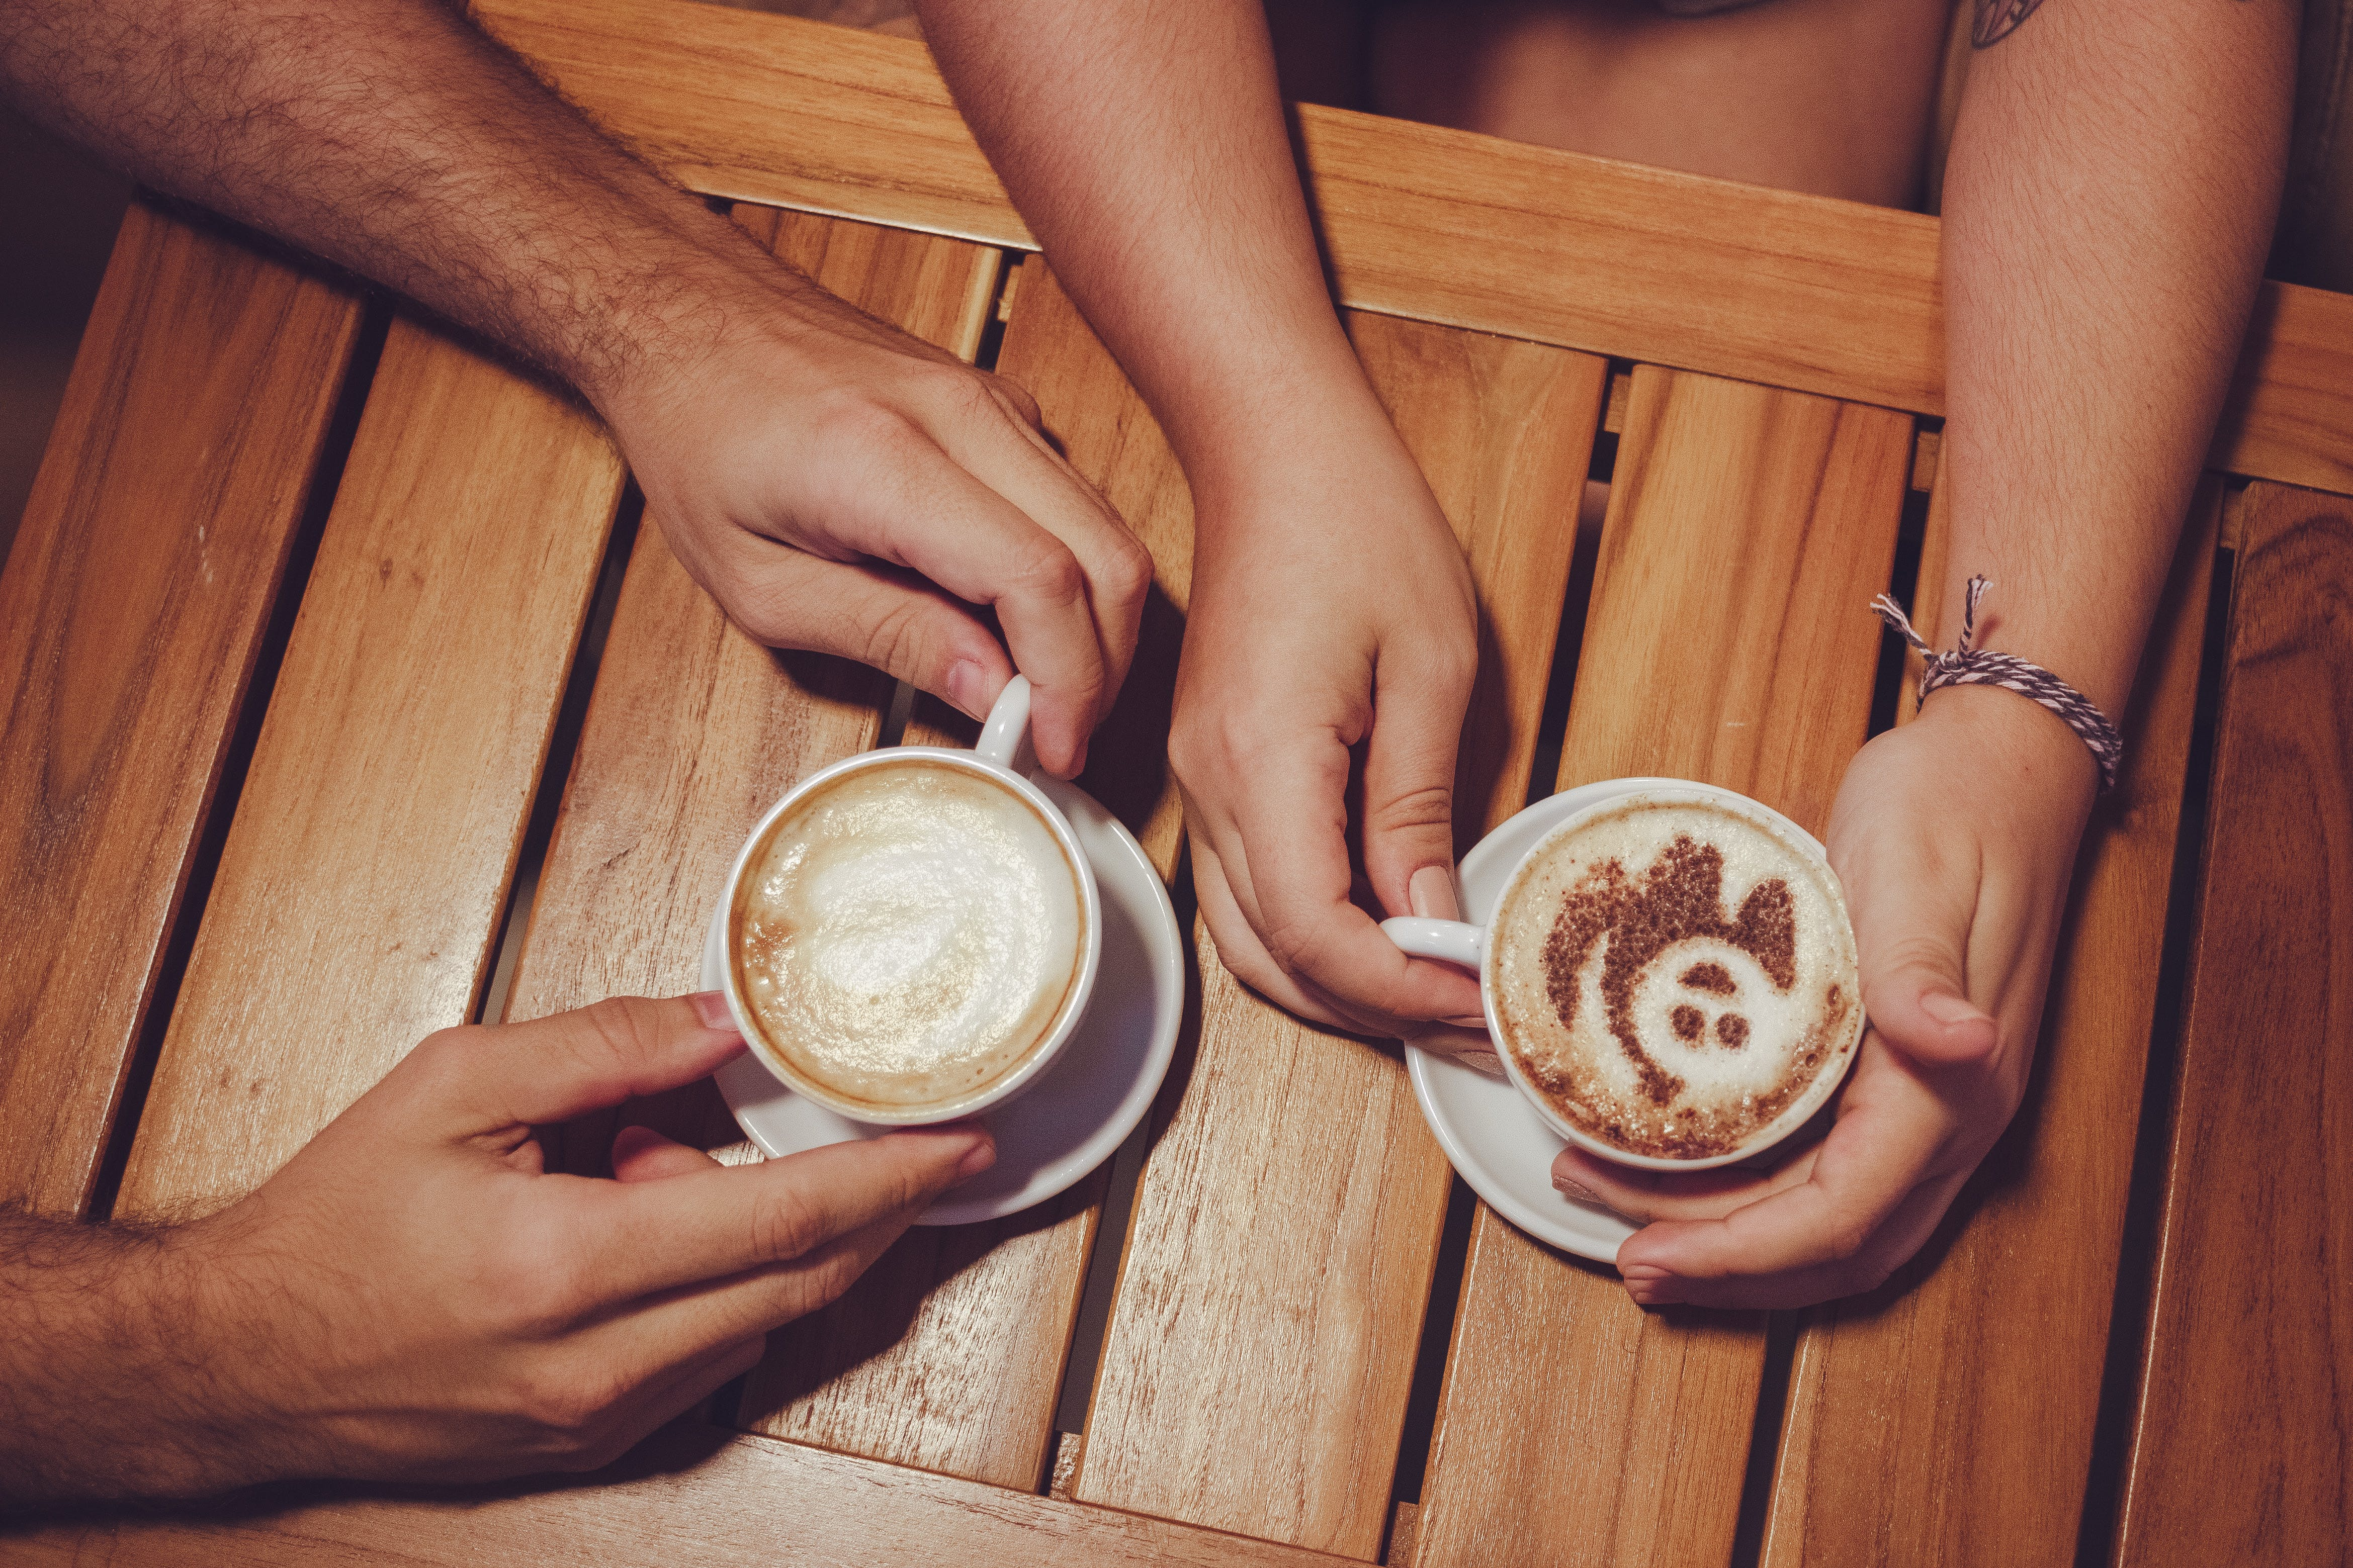 Two People Holding White Cup With Coffee